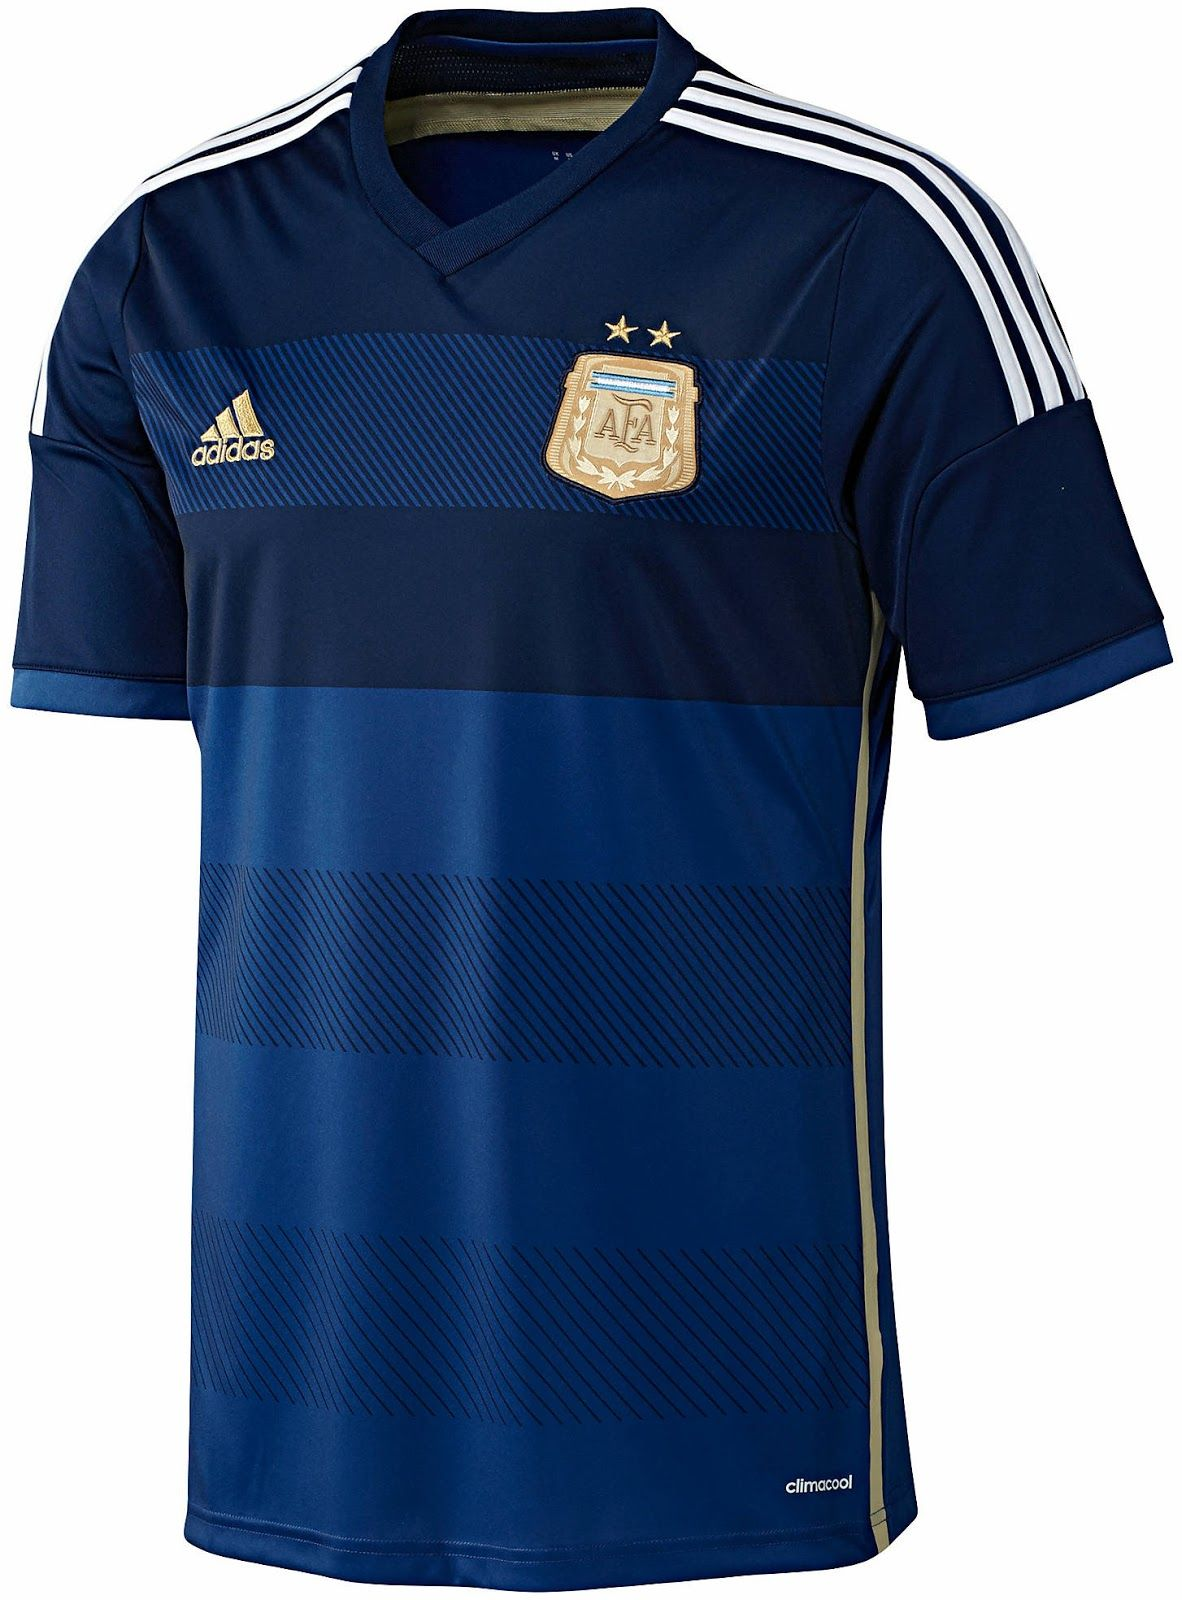 604ffb3825b24 world cup away kit this pic shows the new argentina 2014 world cup ...